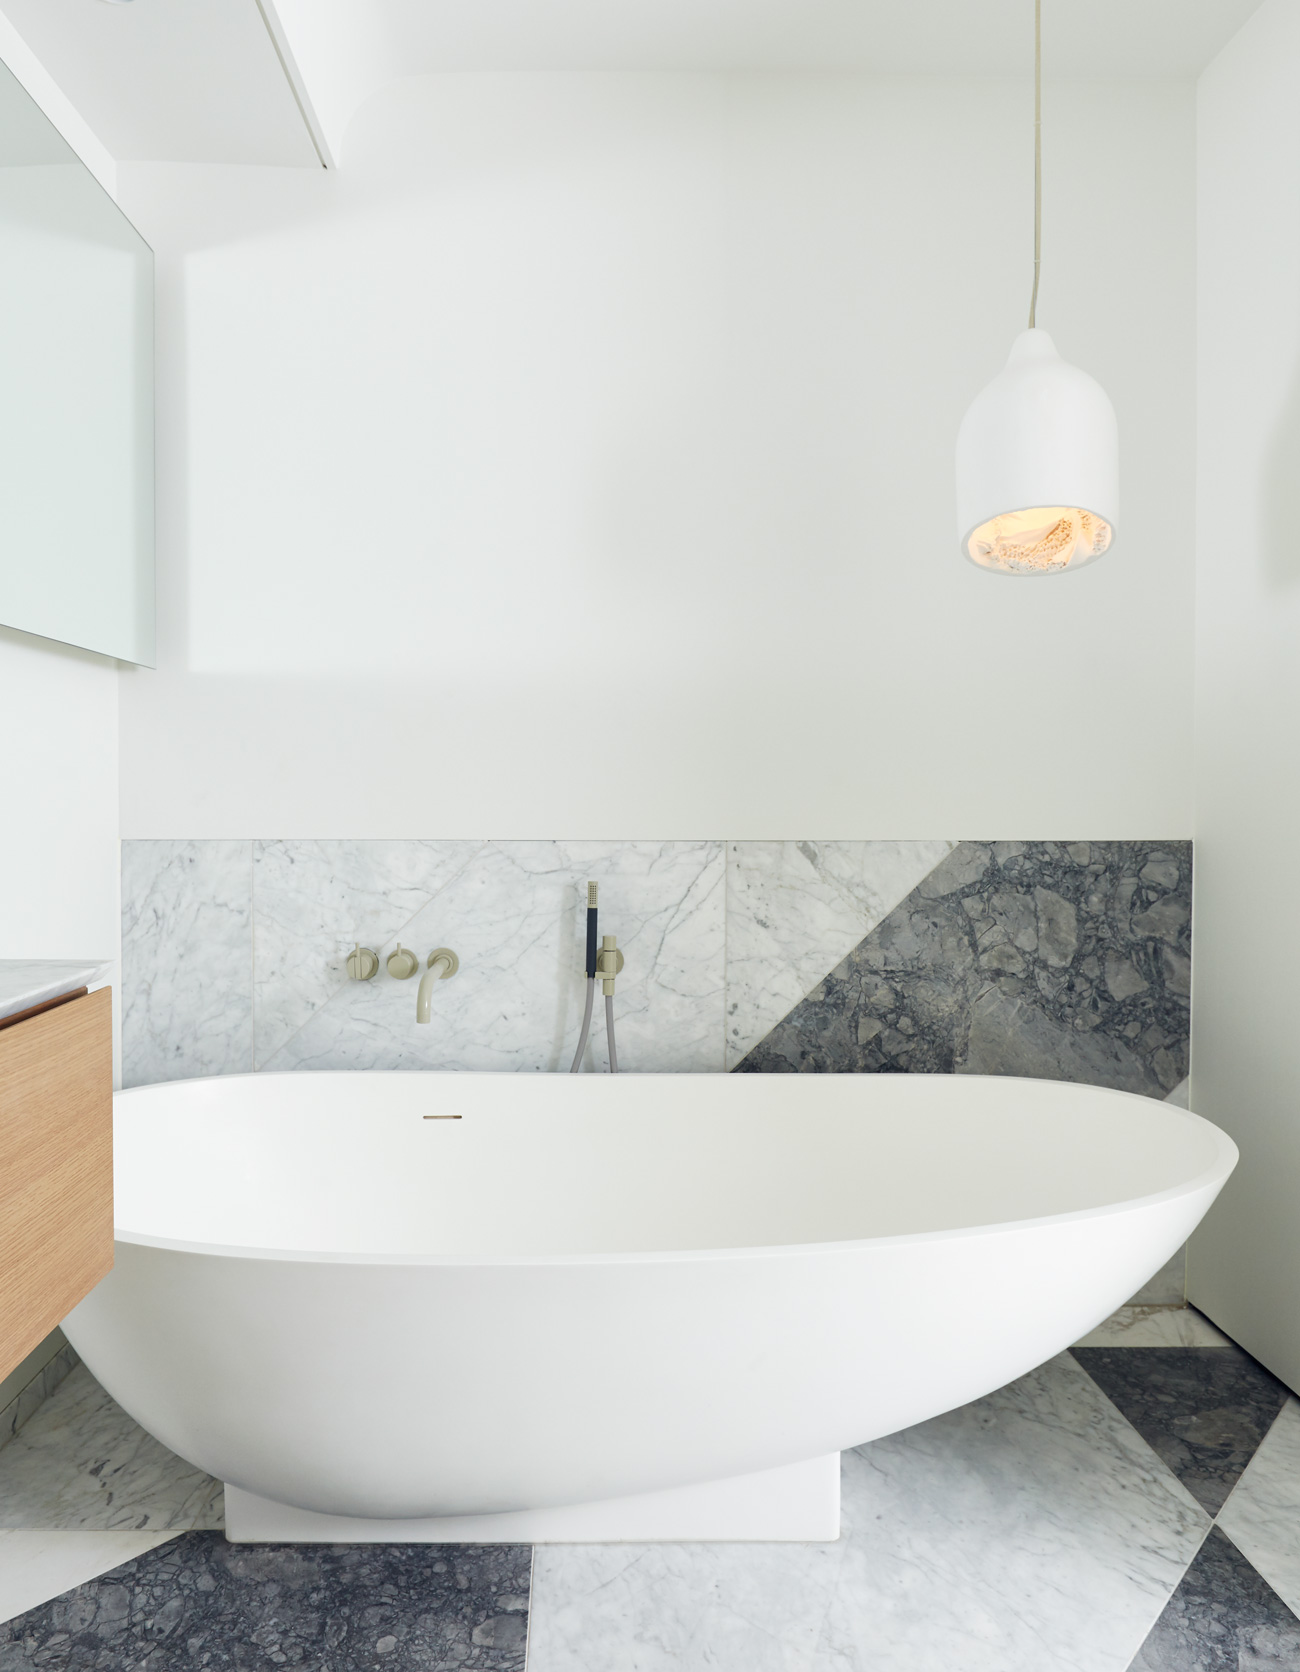 Flooring and backsplash were fashioned from York Fabrica marble off-cuts. Tub and faucets from Ginger's. Photo by Michael Graydon.